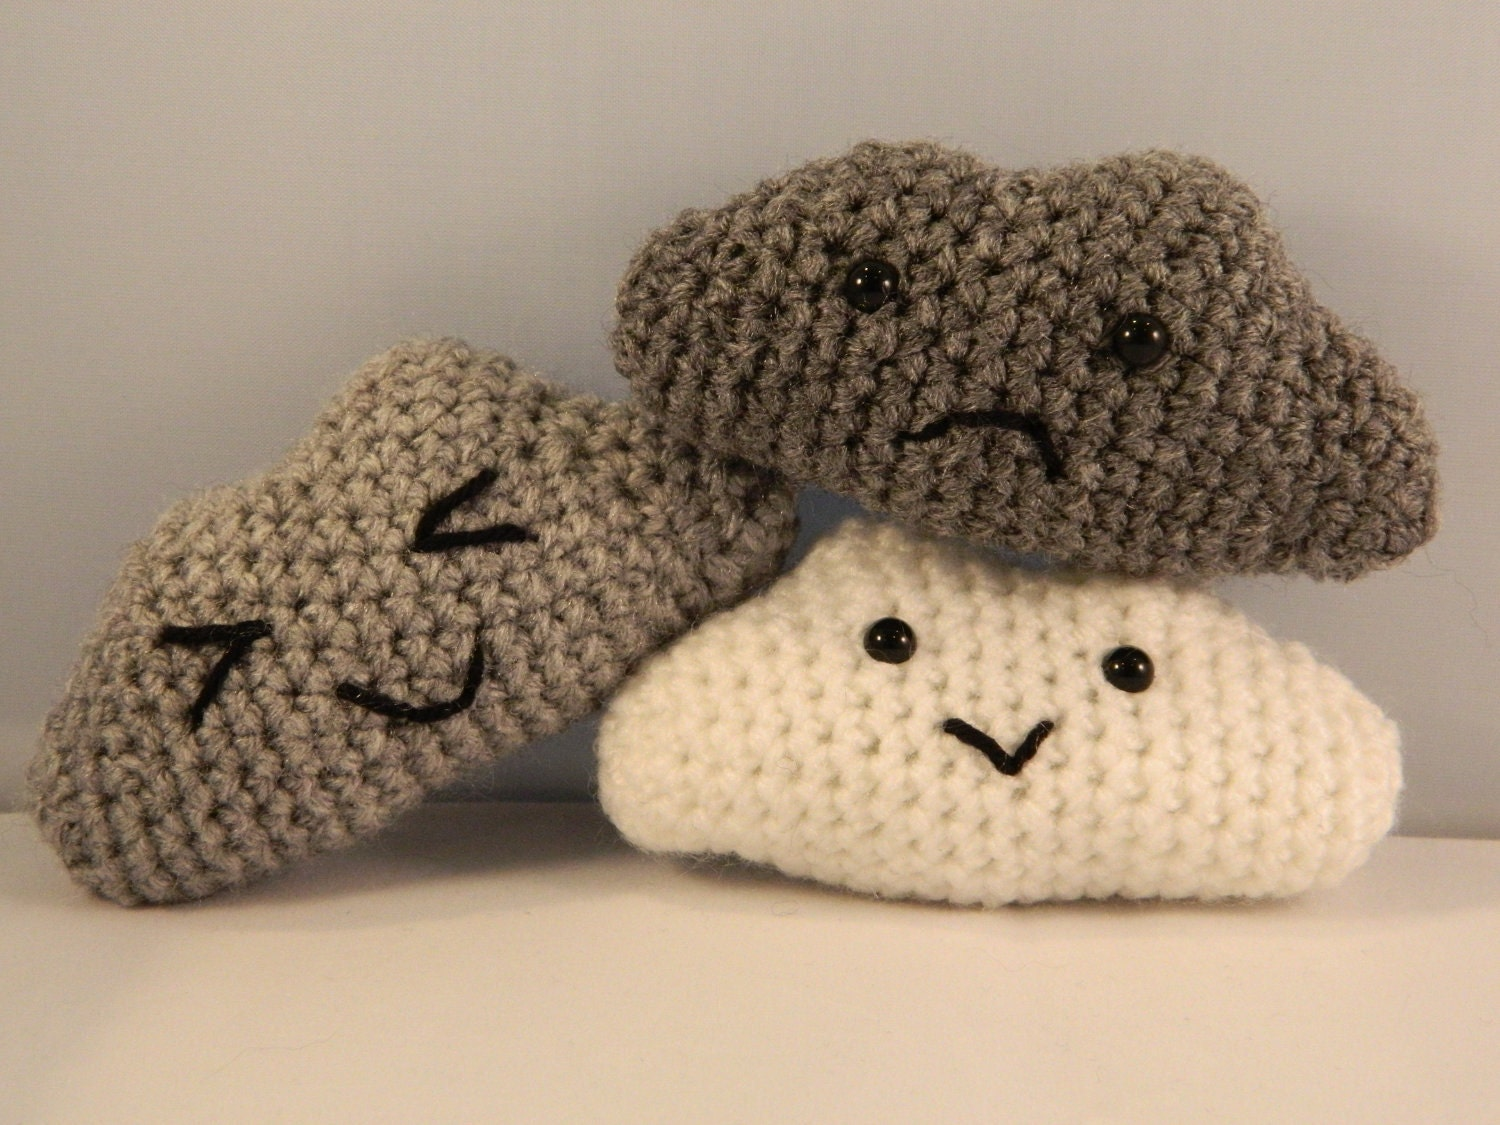 Crochet Amigurumi Smiley Faces : Norbert the fluffy cloud plush amigurumi with by ...